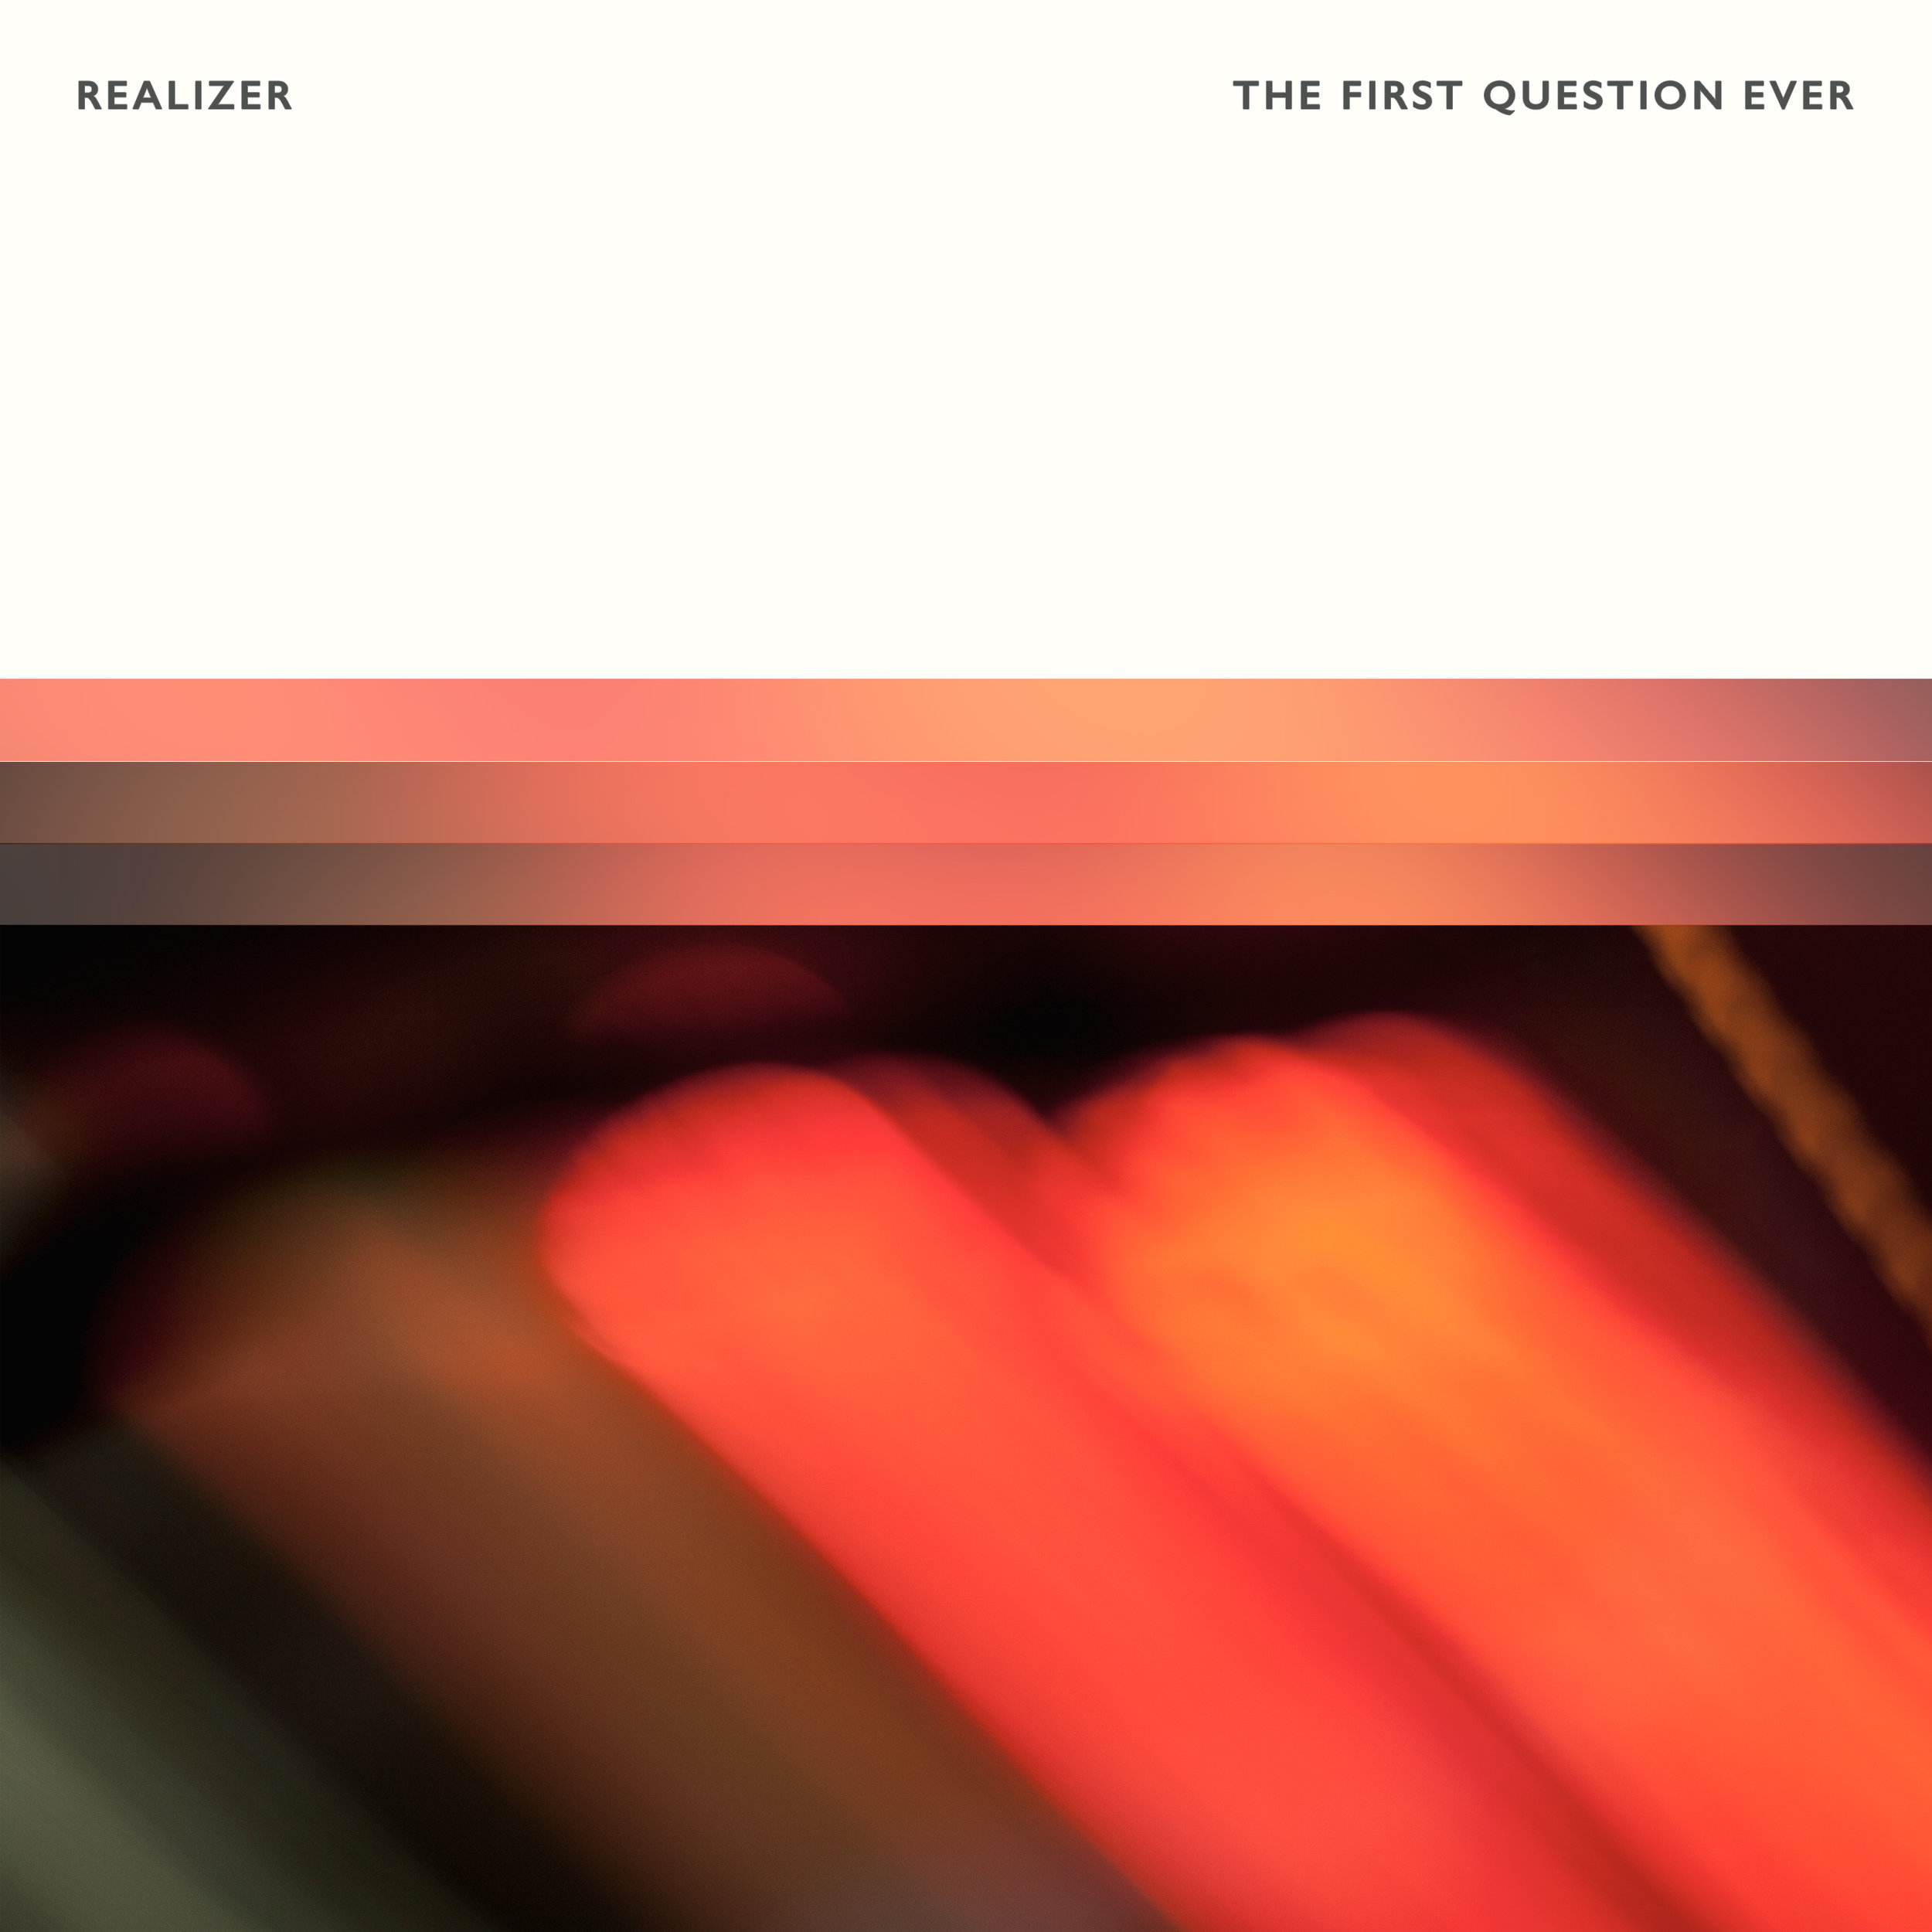 Realizer —The First Question Ever (remastered)